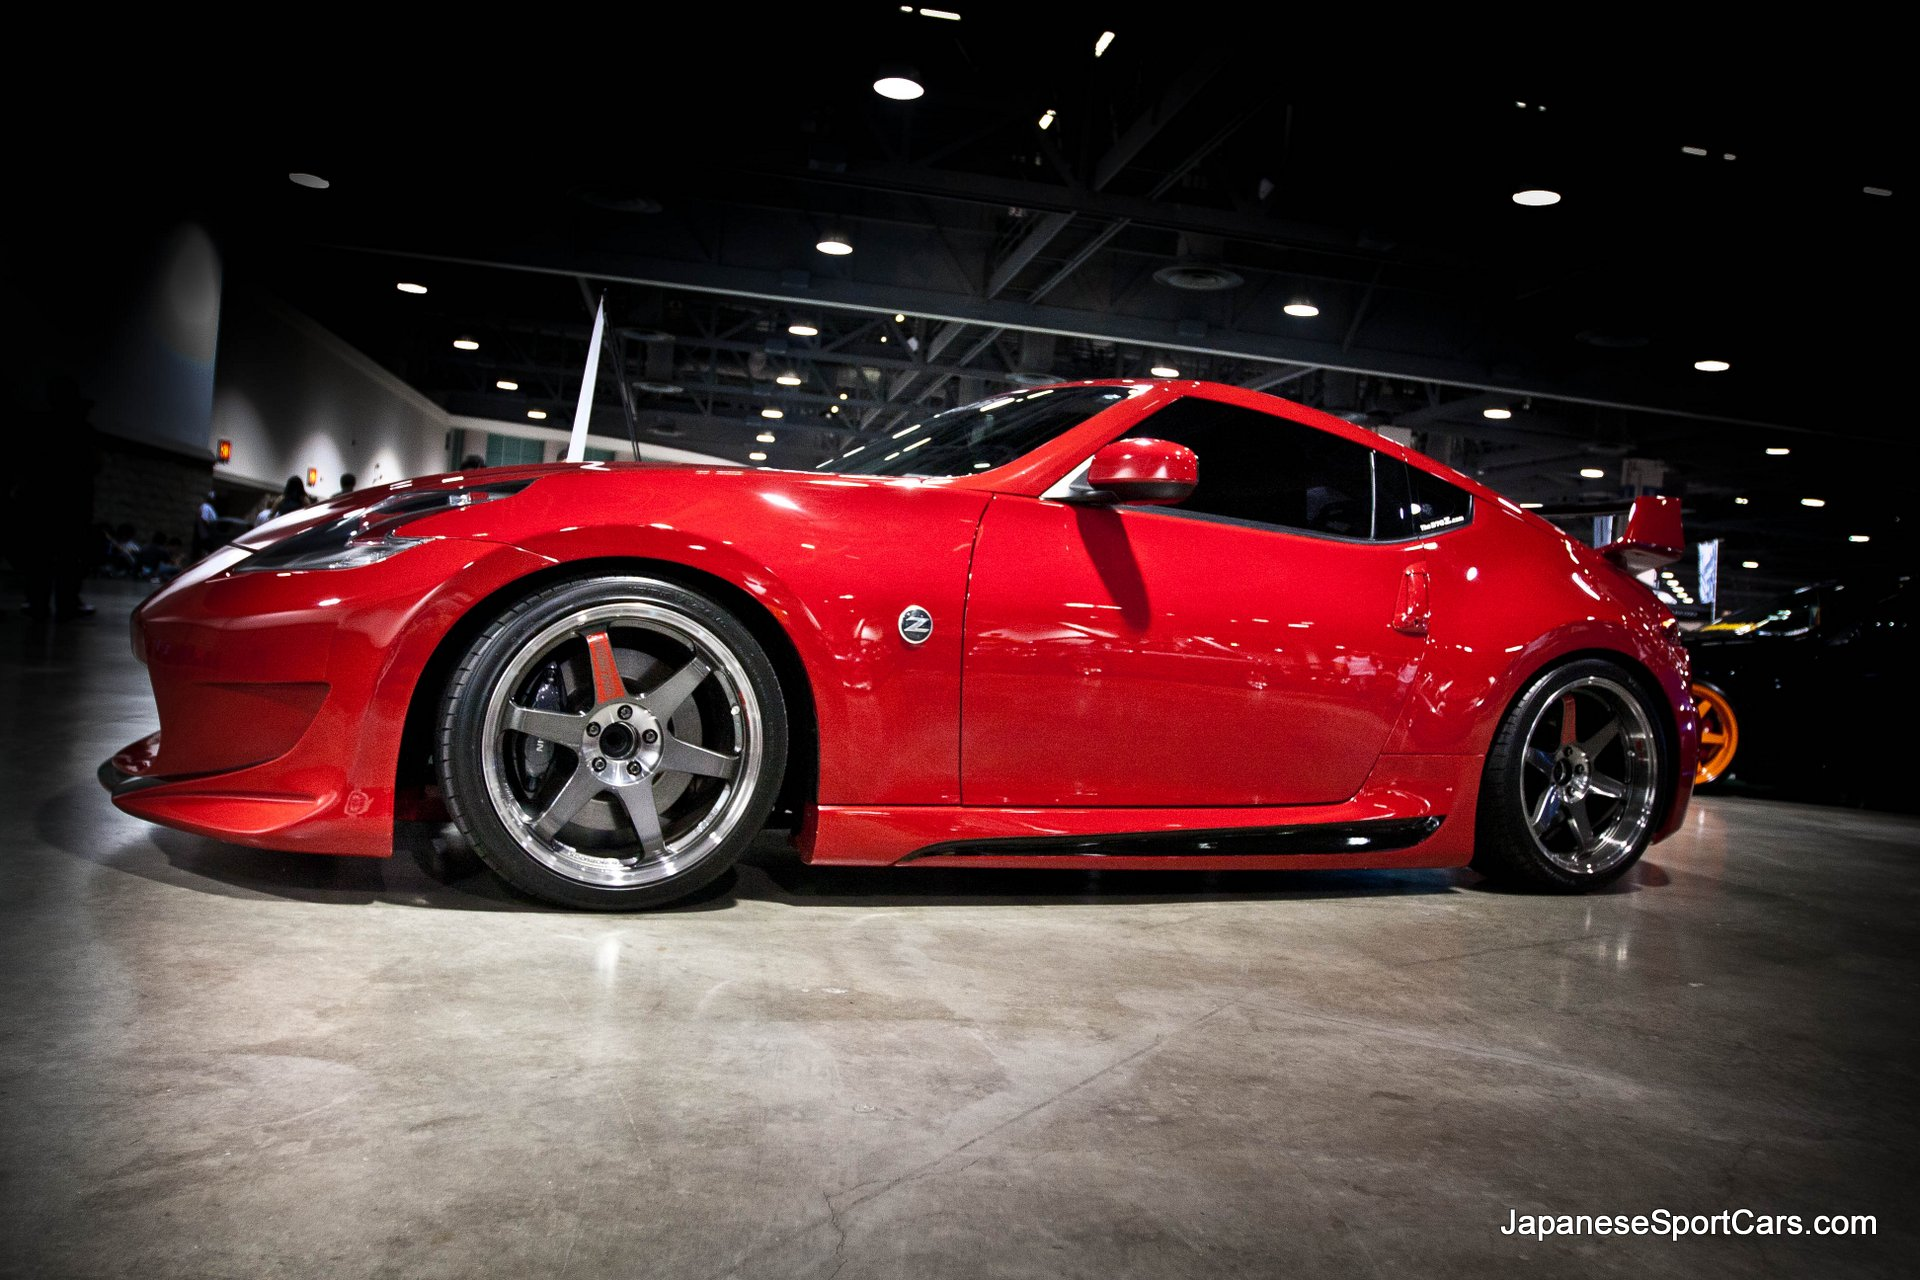 Nissan 370Z with Powerhouse Amuse Vestito Body Kit   Picture Number 1920x1280